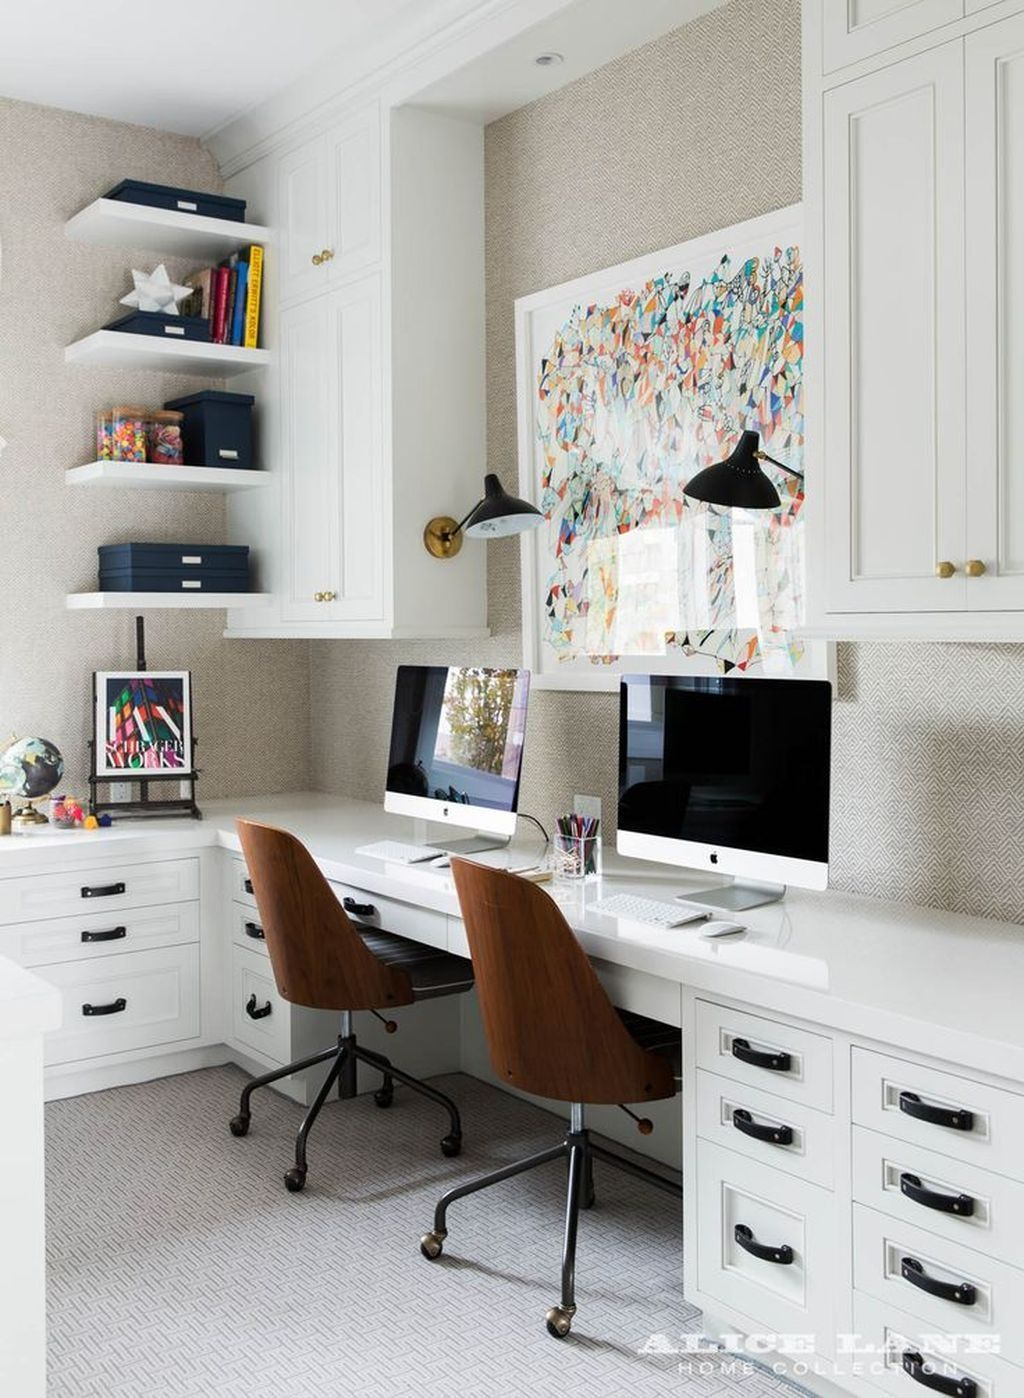 99 Cool and Creative Desk Design Ideas   Desks, Office spaces and Attic